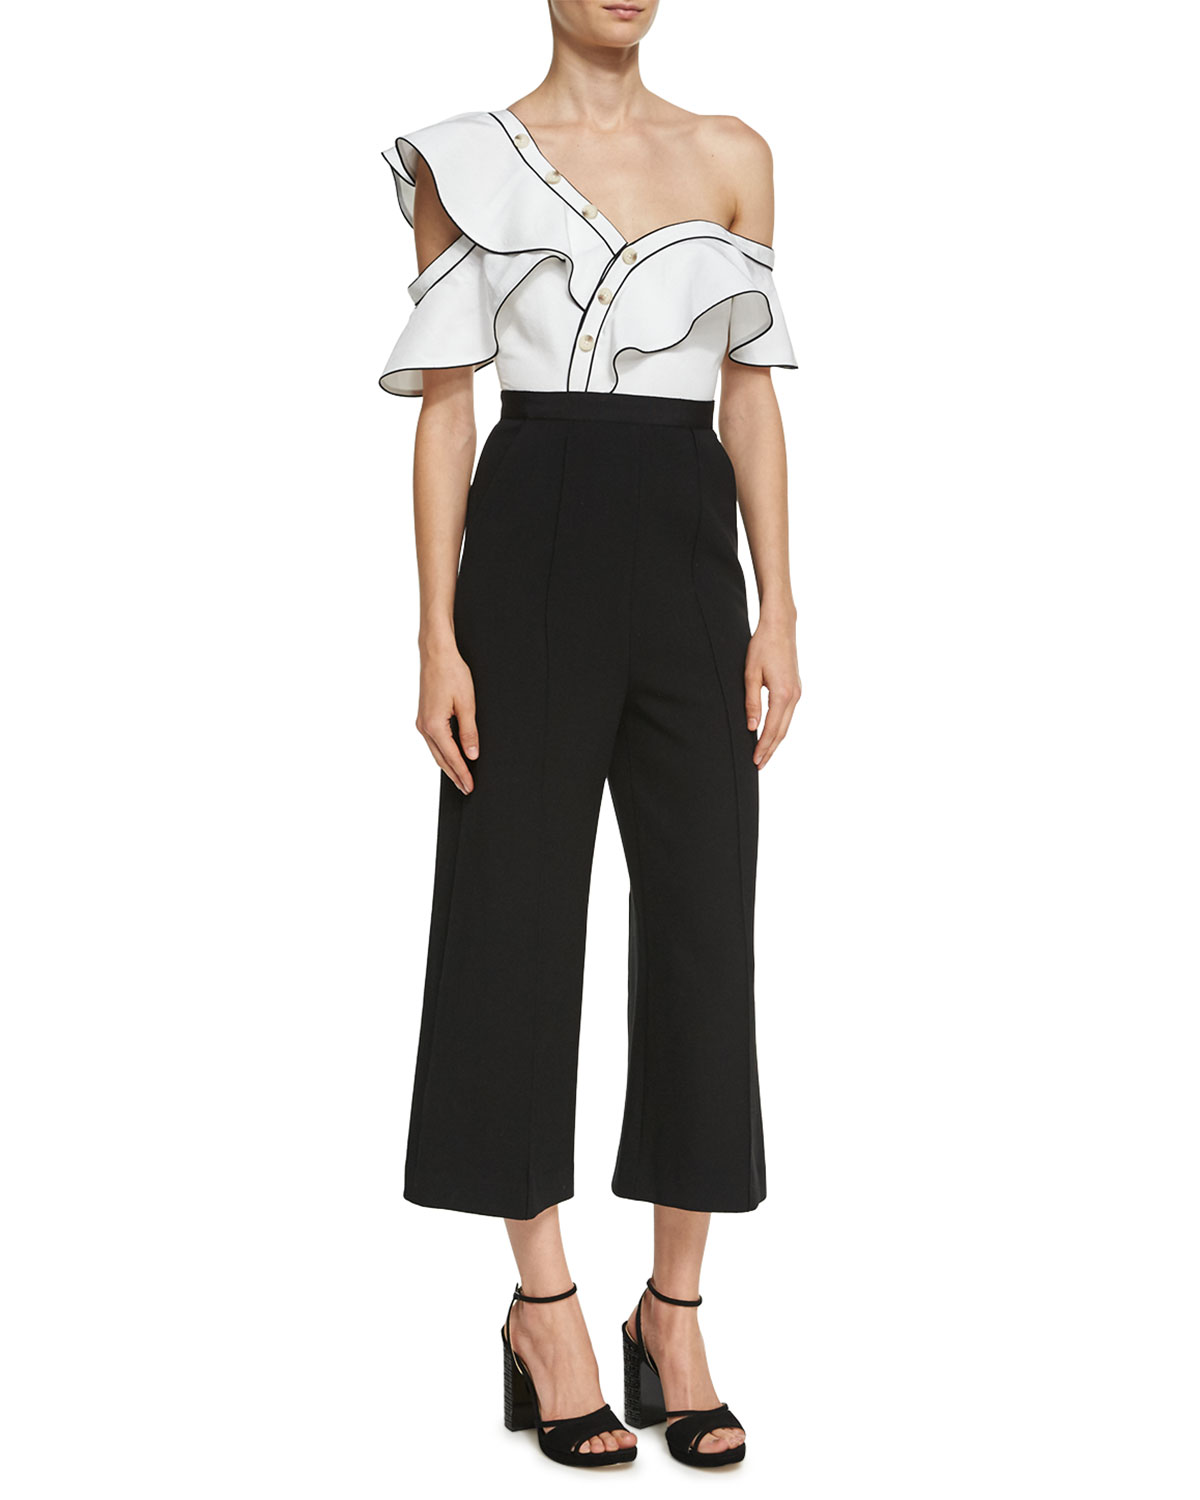 7aeffe4aed3 Self-Portrait Monochrome Frill Jumpsuit